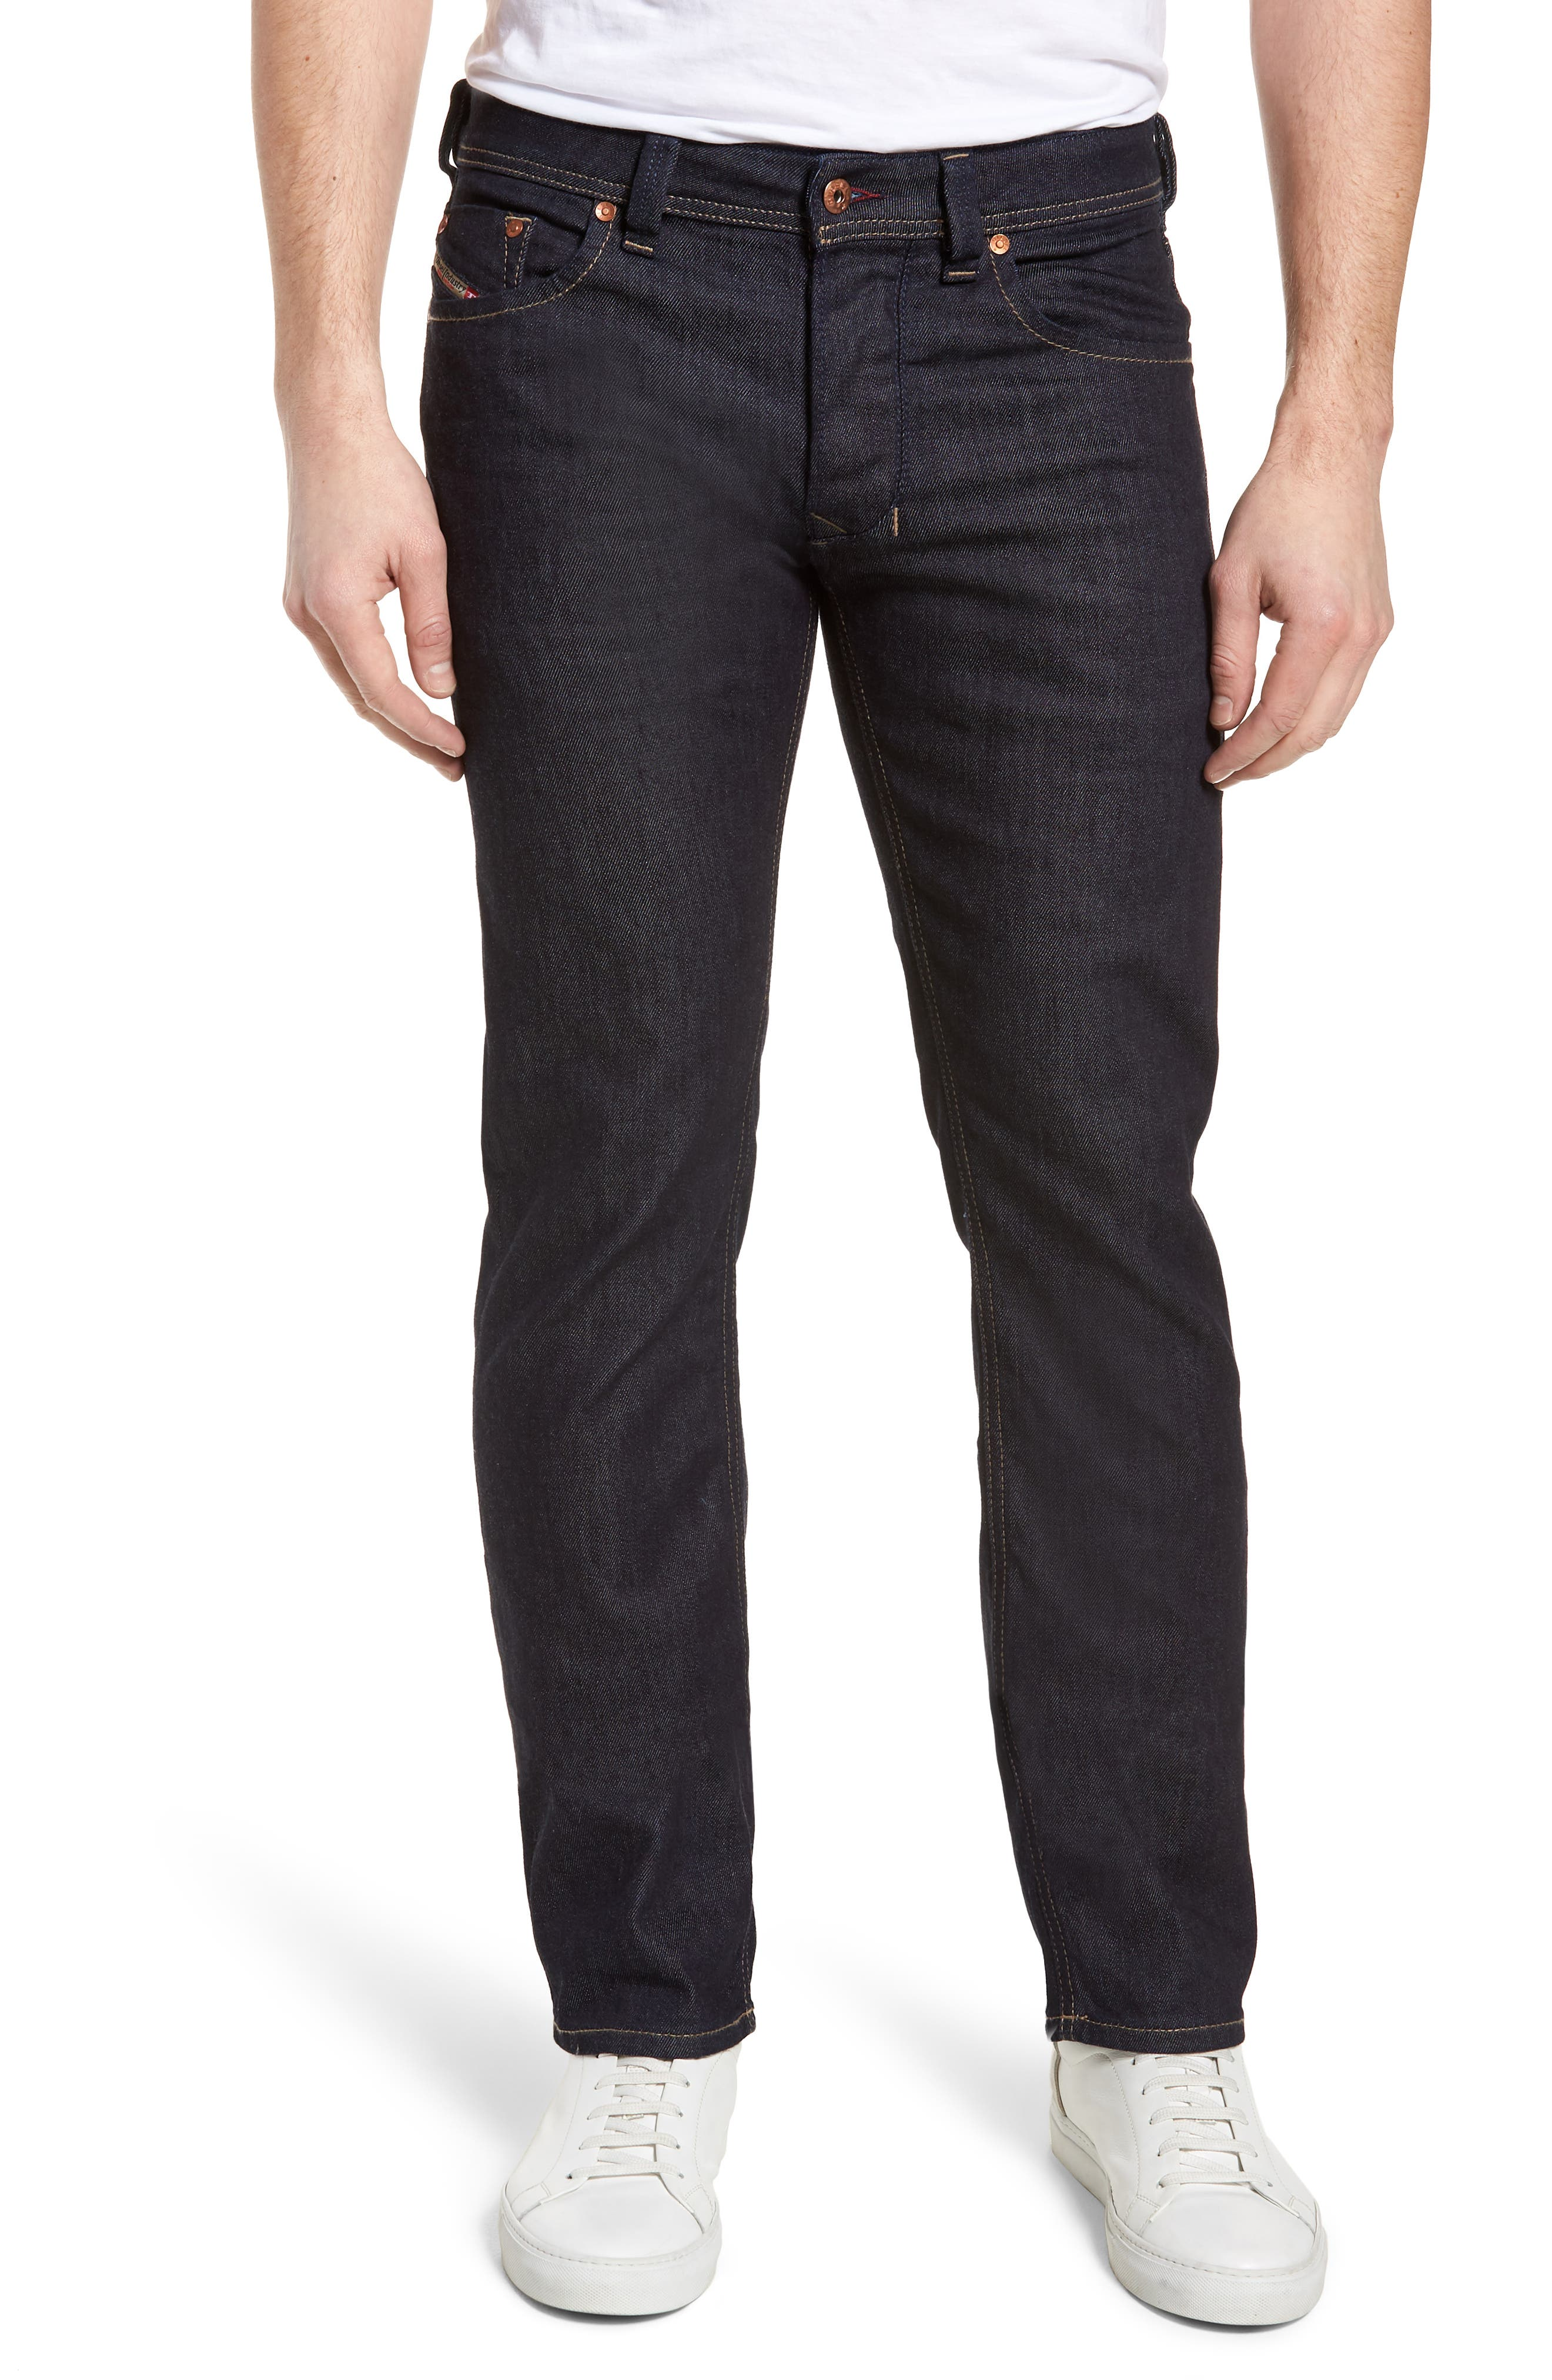 Larkee Relaxed Fit Jeans,                             Main thumbnail 1, color,                             Blue